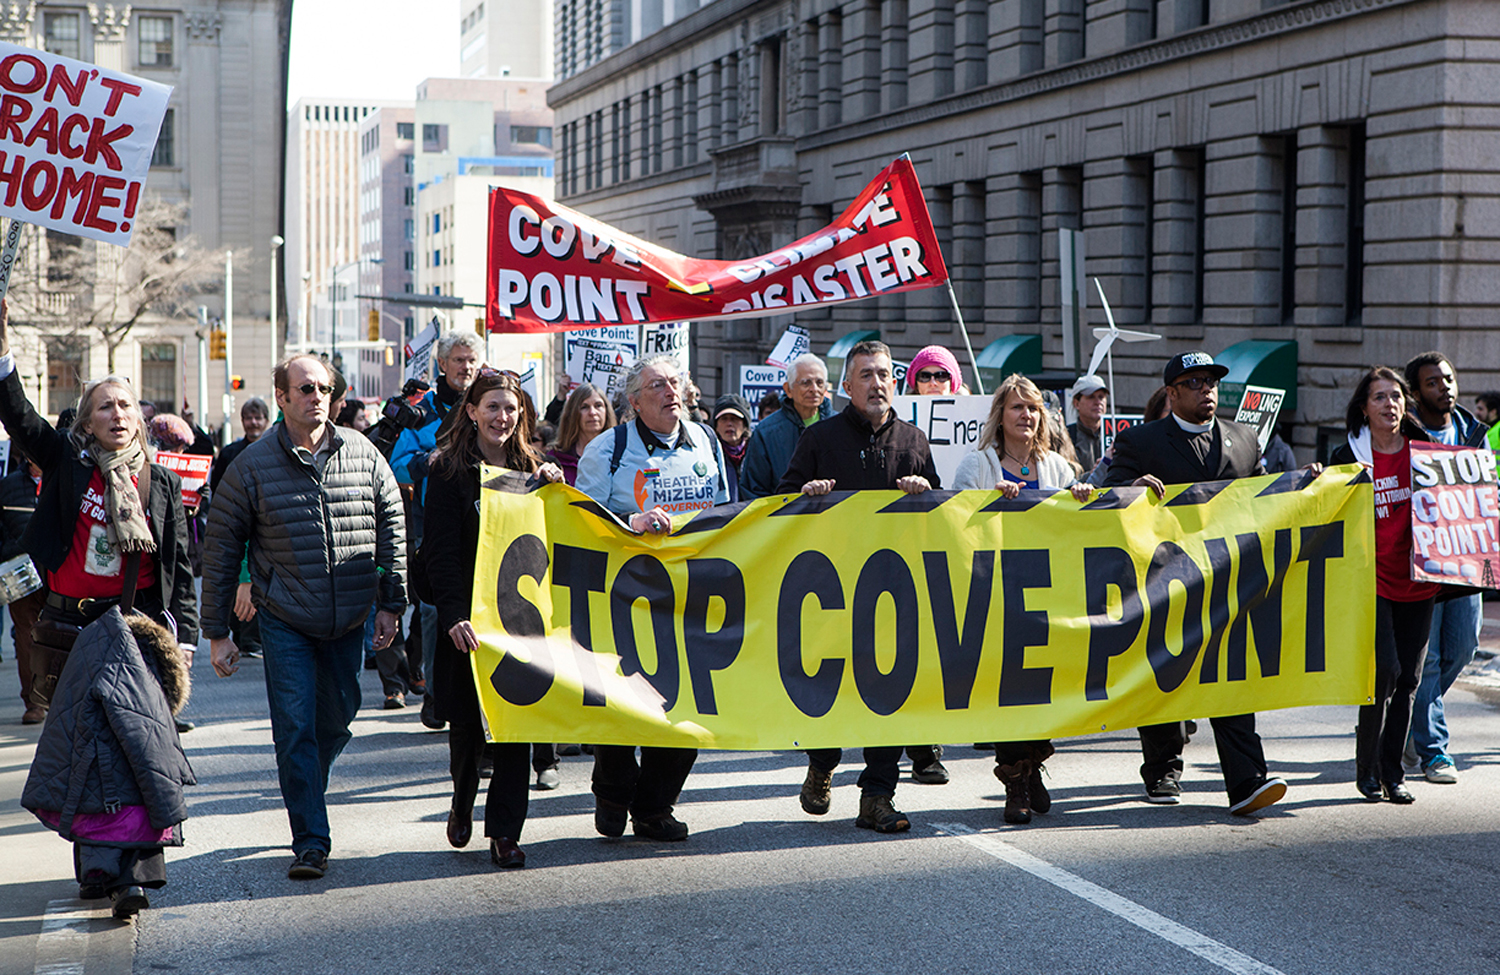 Activists-speak-out-against-Cove-Point